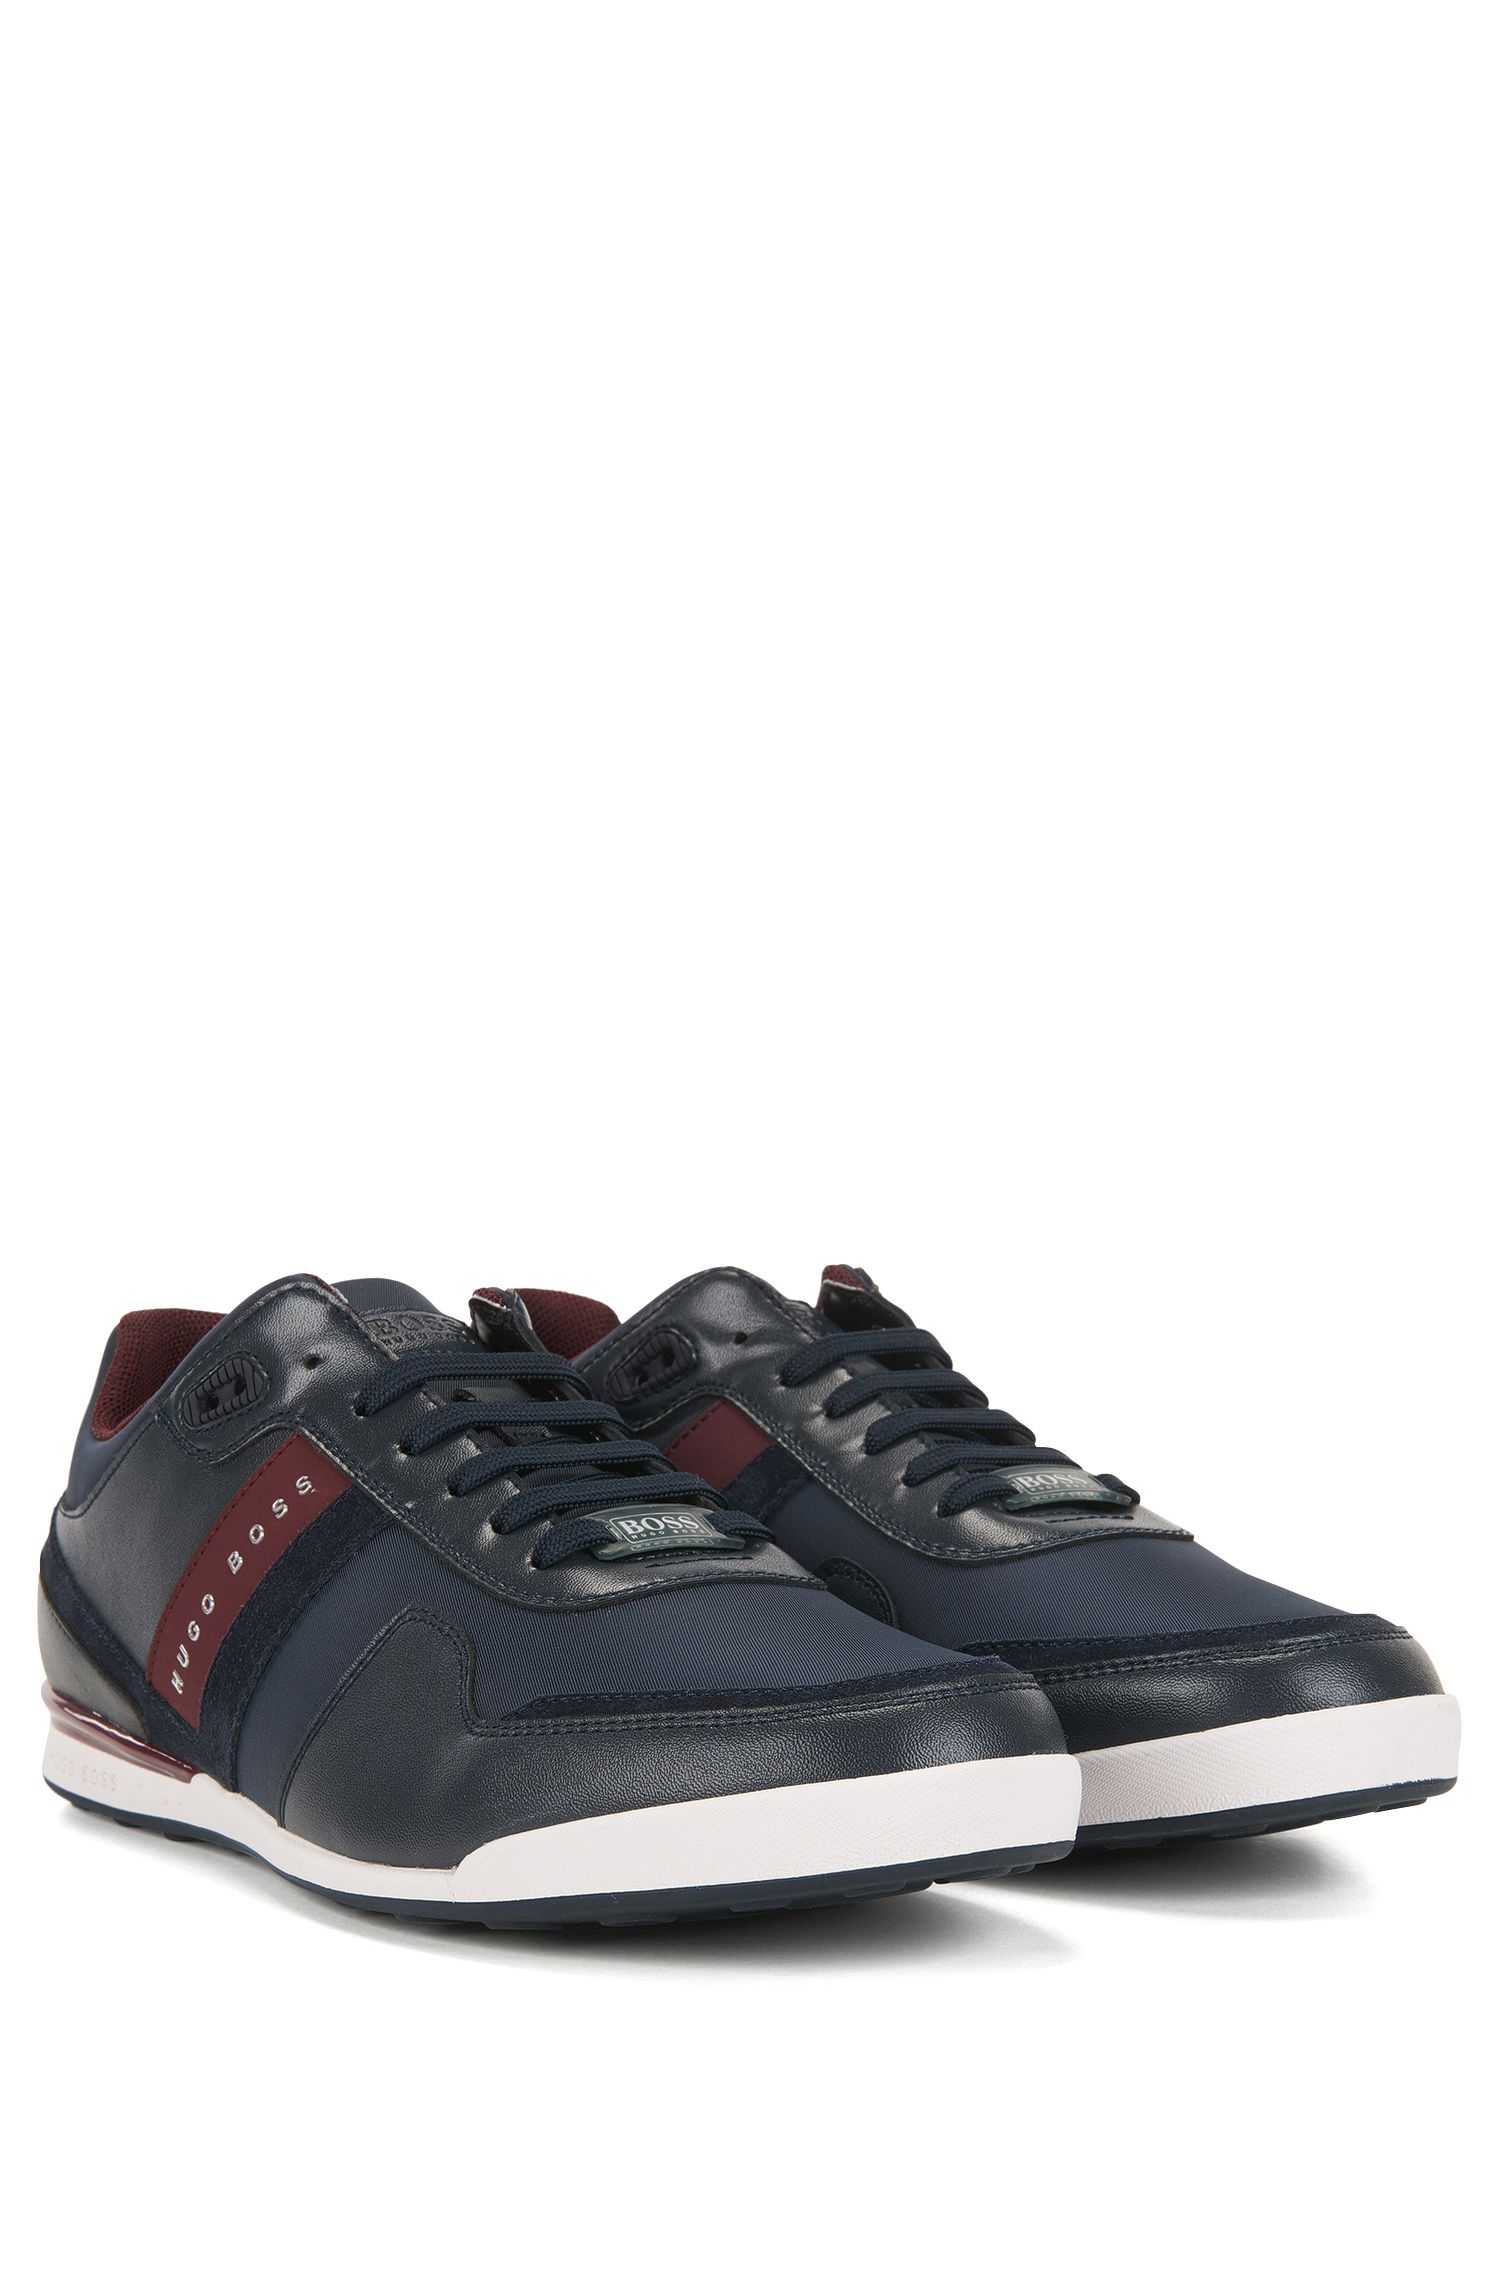 Leather & Textile Sneaker | Arkansas Lowp Nymx